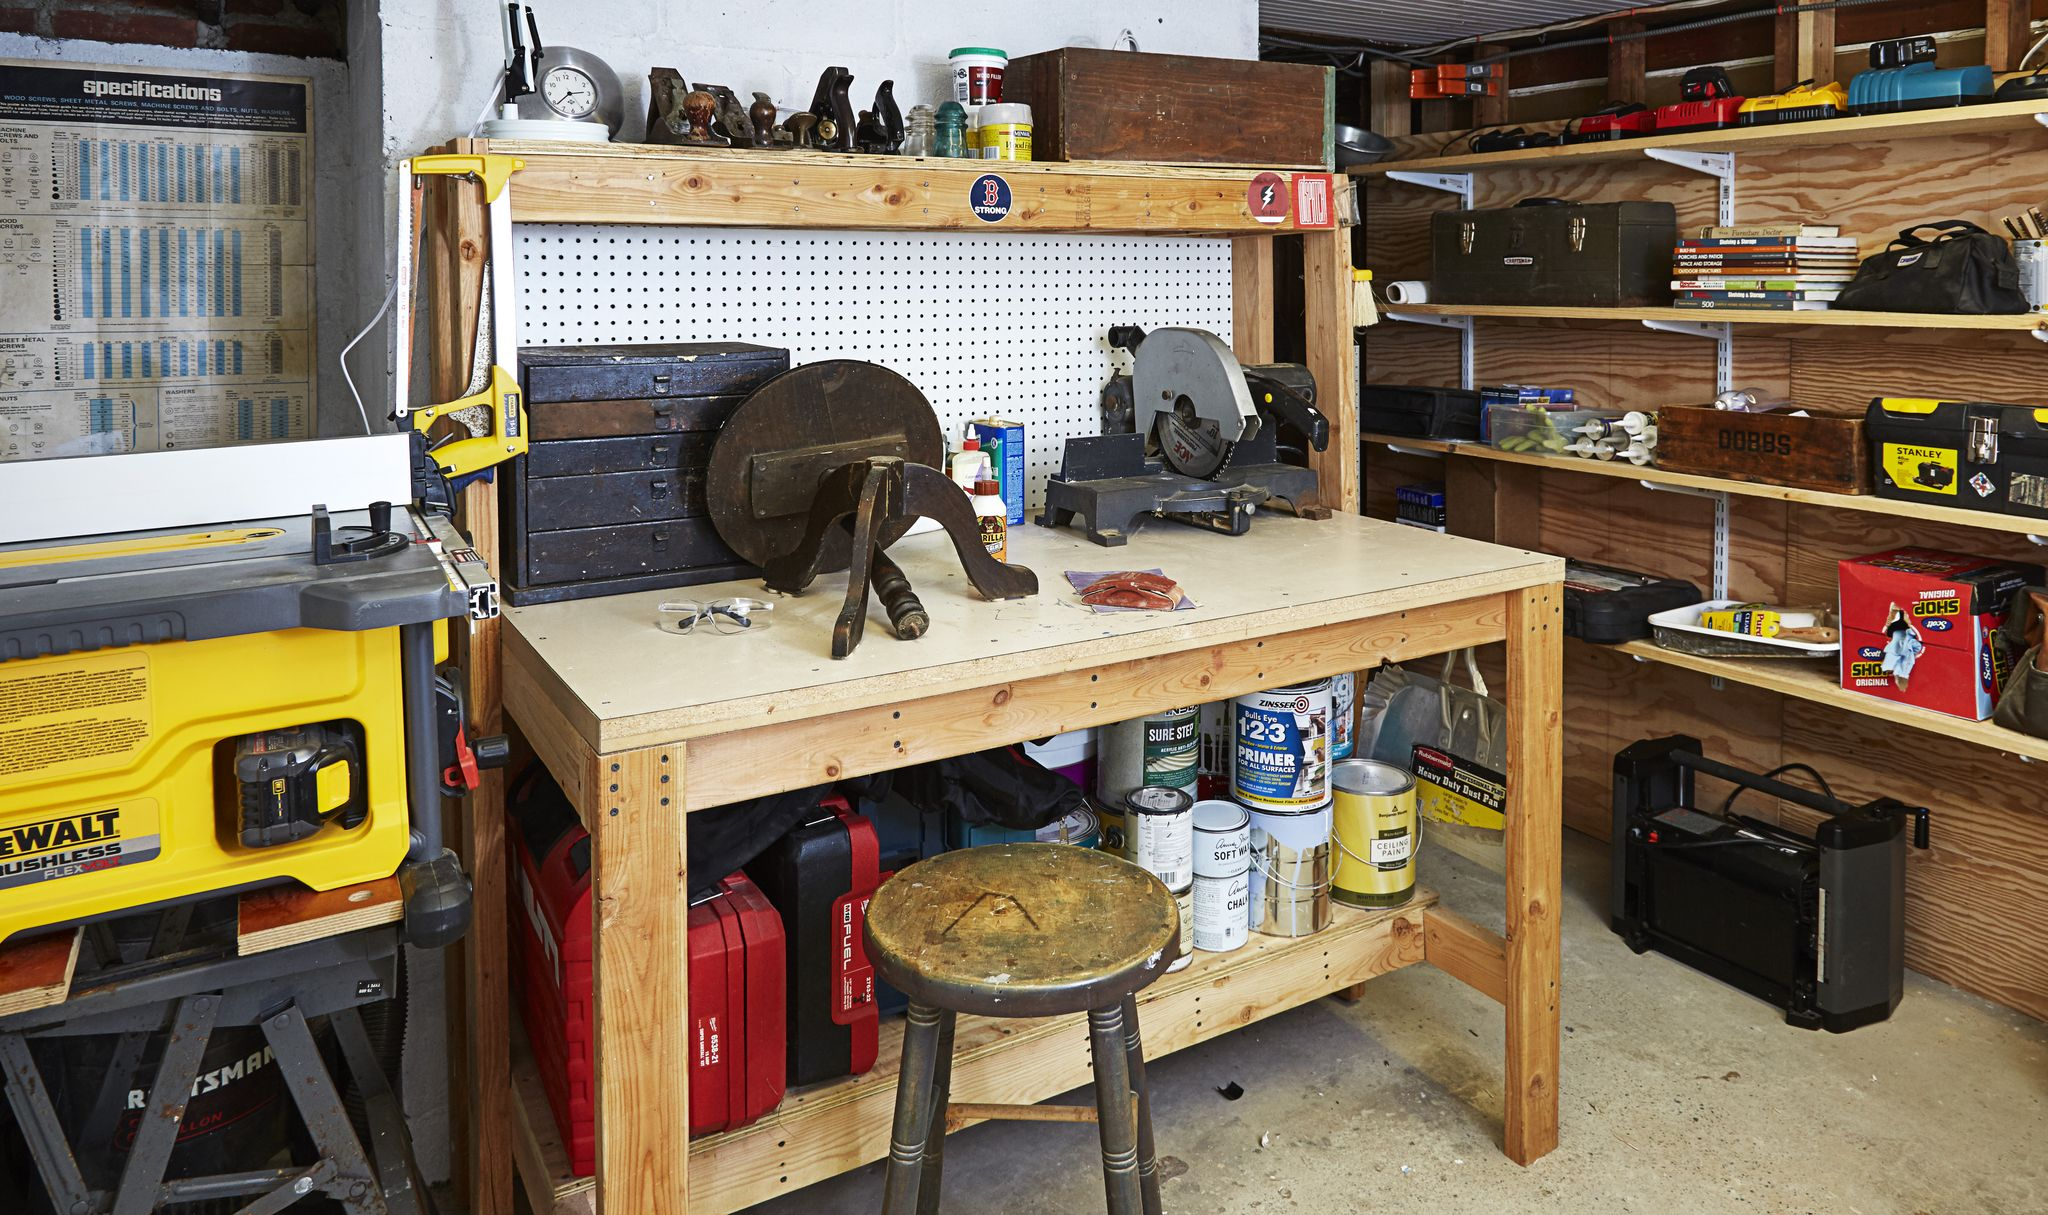 A Well-Lit Workshop: How To Turn Your Basement Into a DIY Utopia